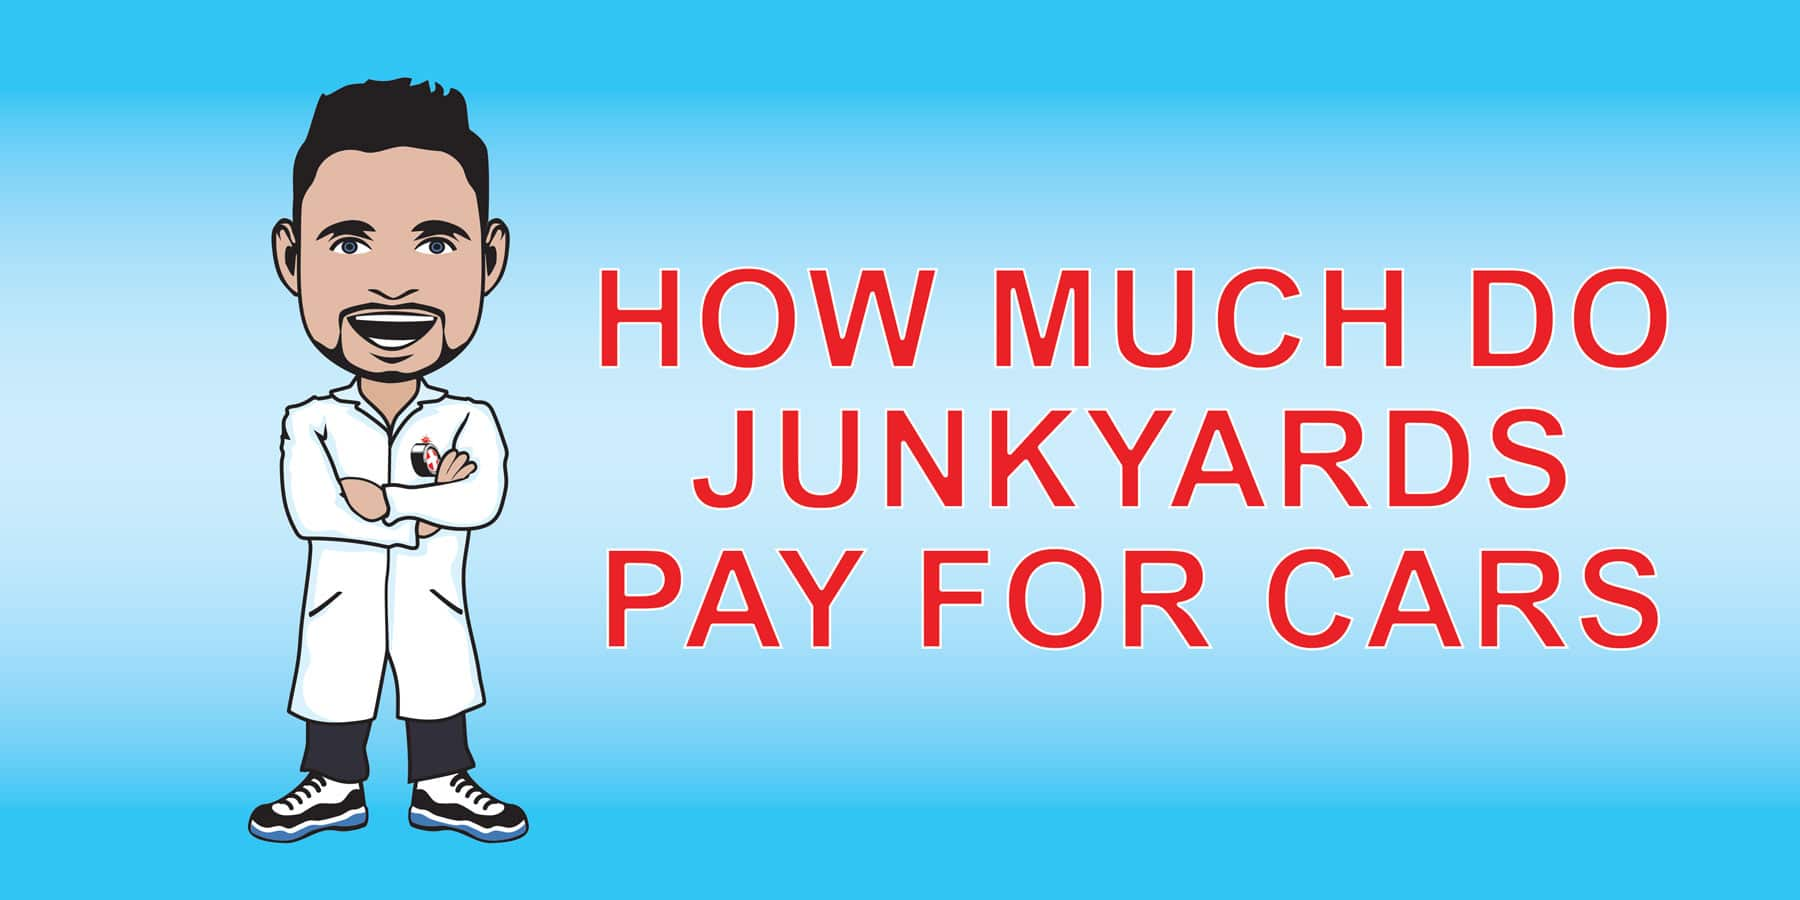 how much do junkyards pay for cars